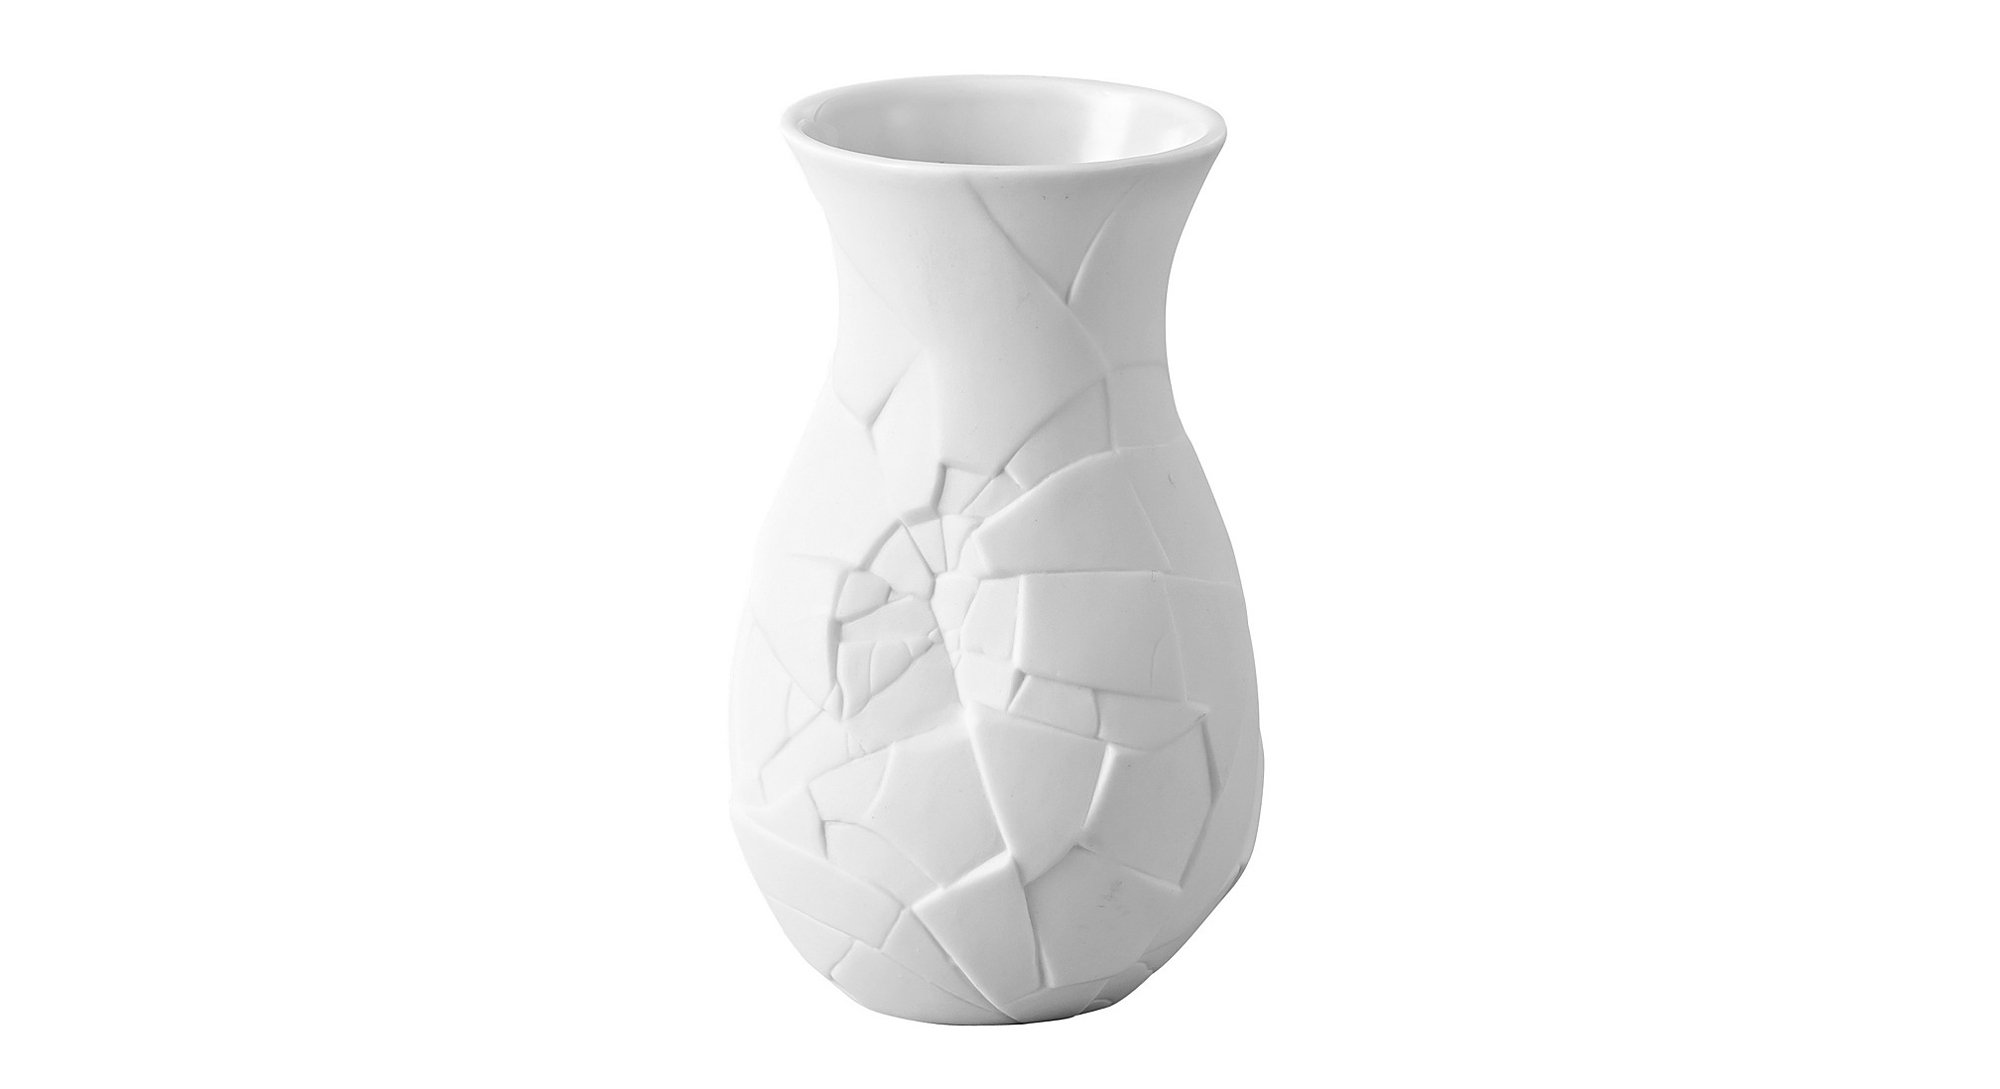 Rosenthal Vase of Phases Mini Vase